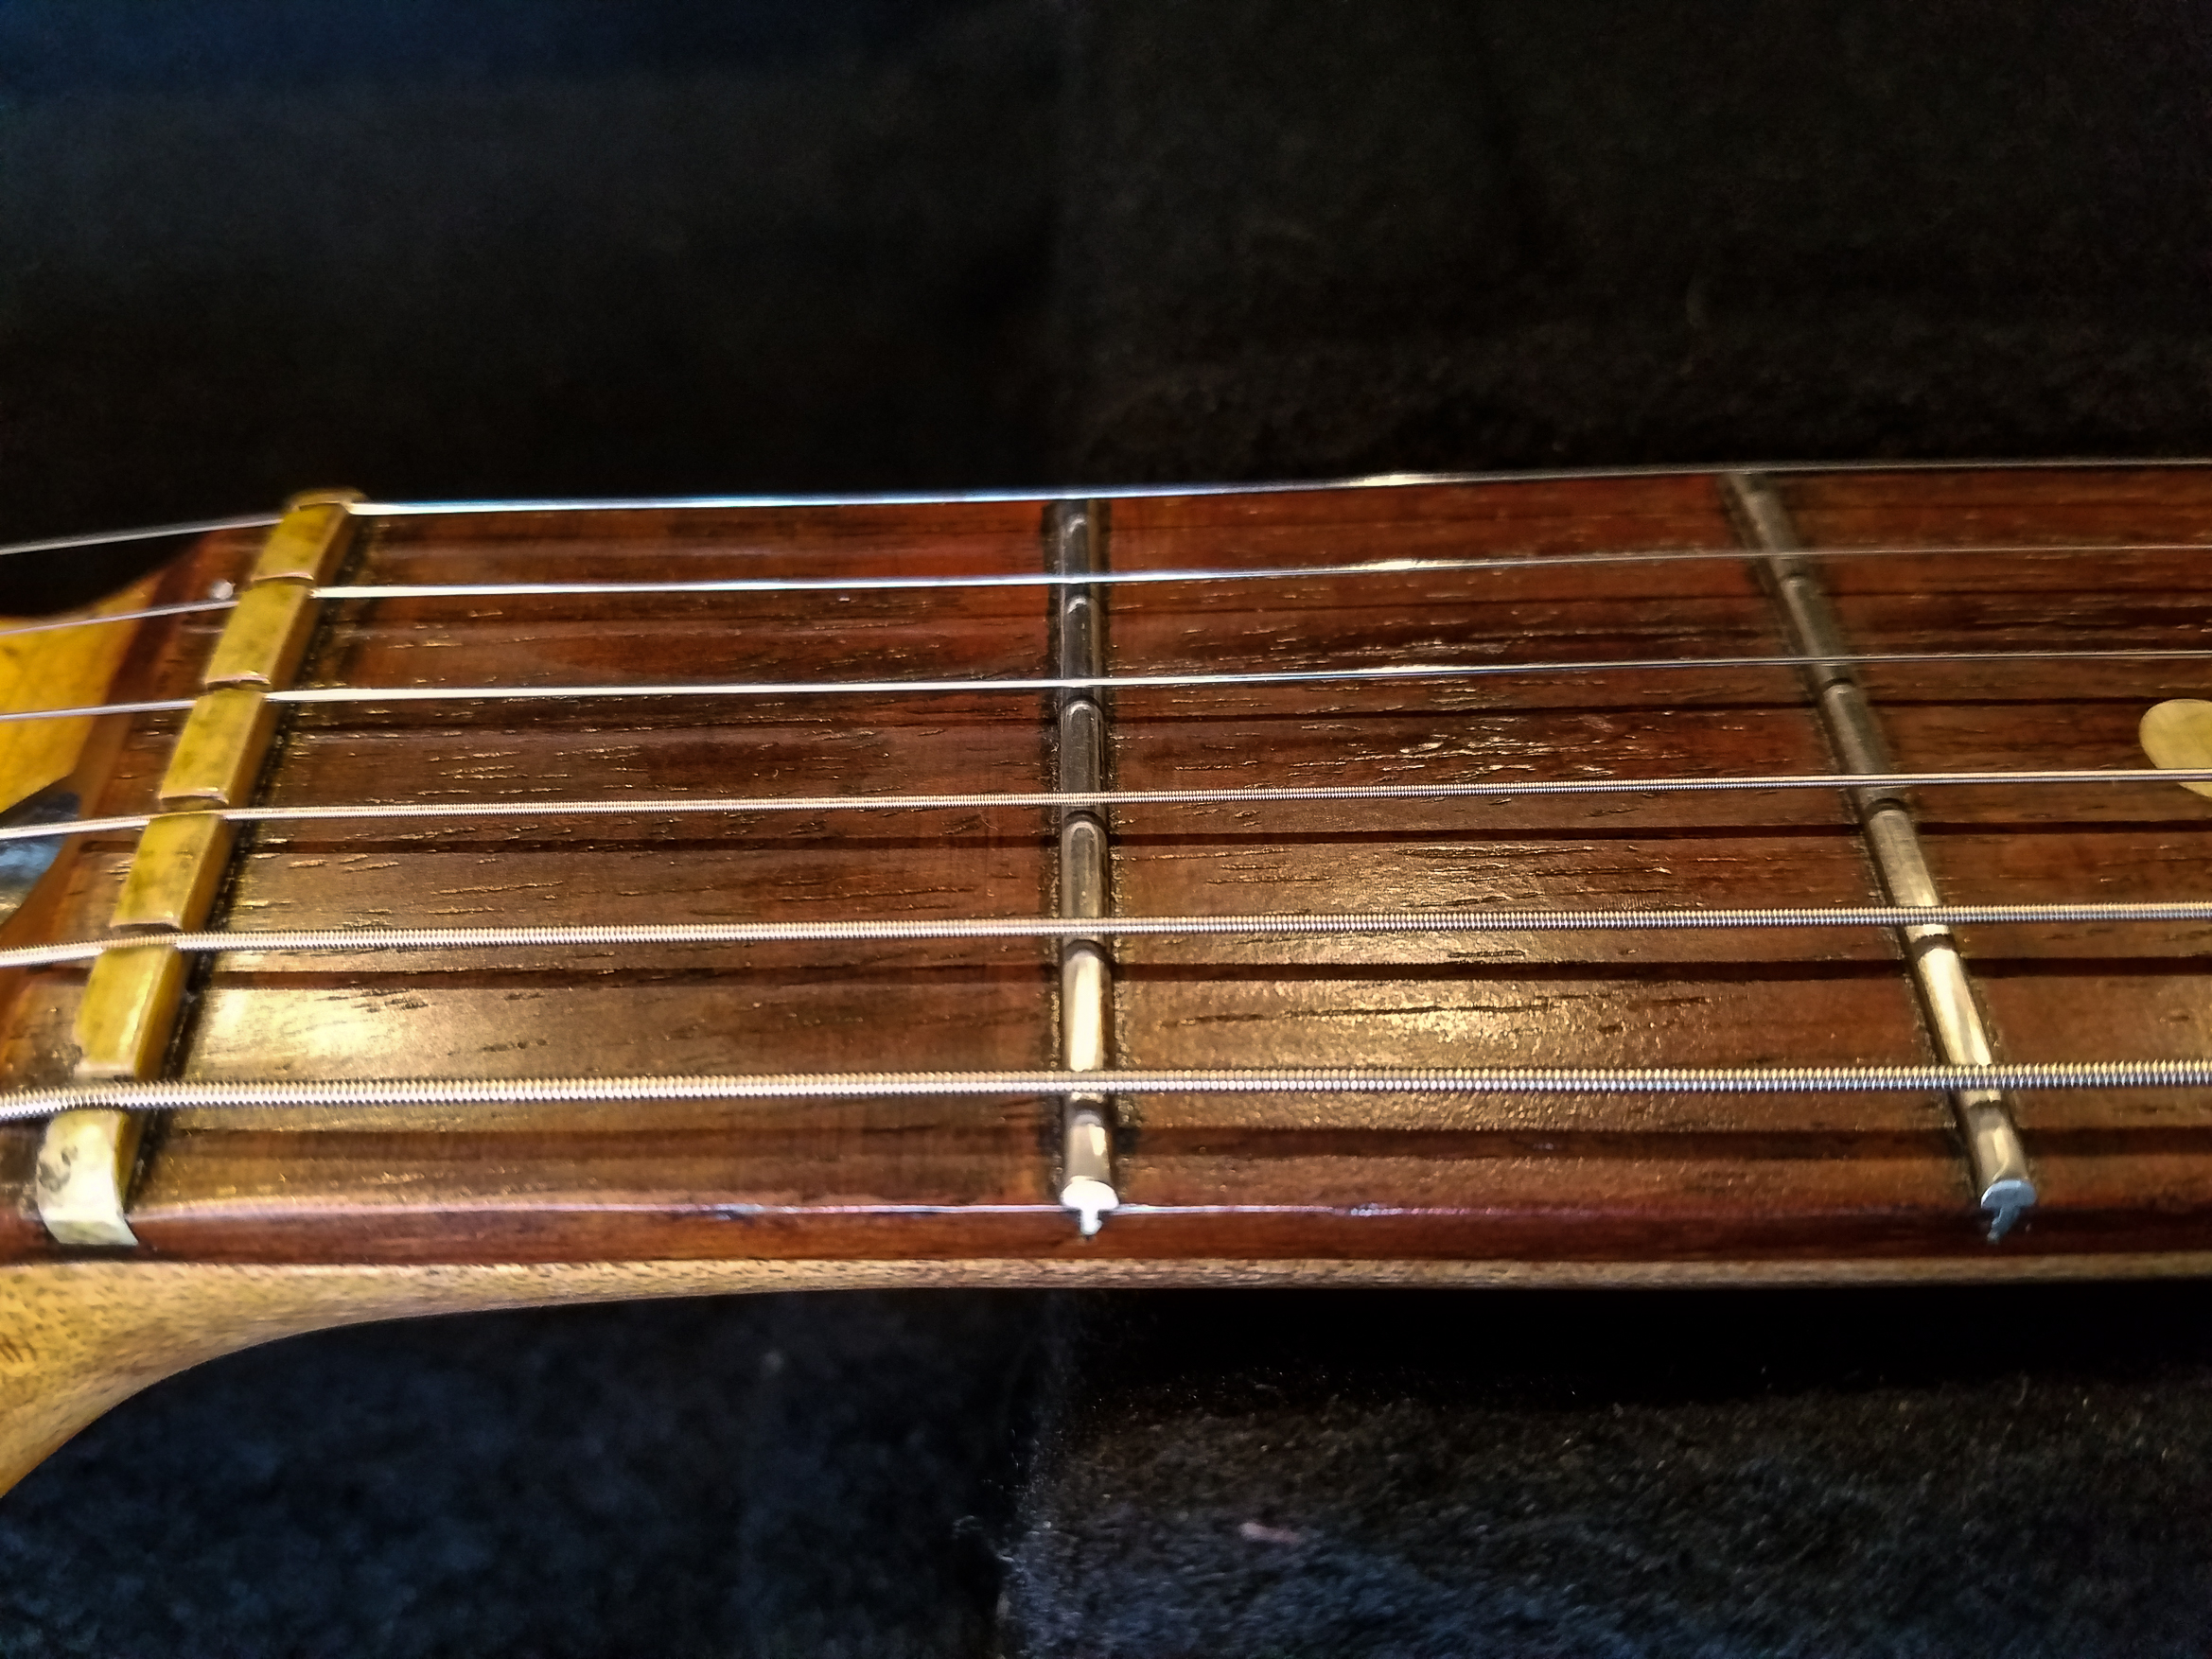 Fender Stratocaster Relic Nut Rosewood Neck Frets Guitarwacky.com